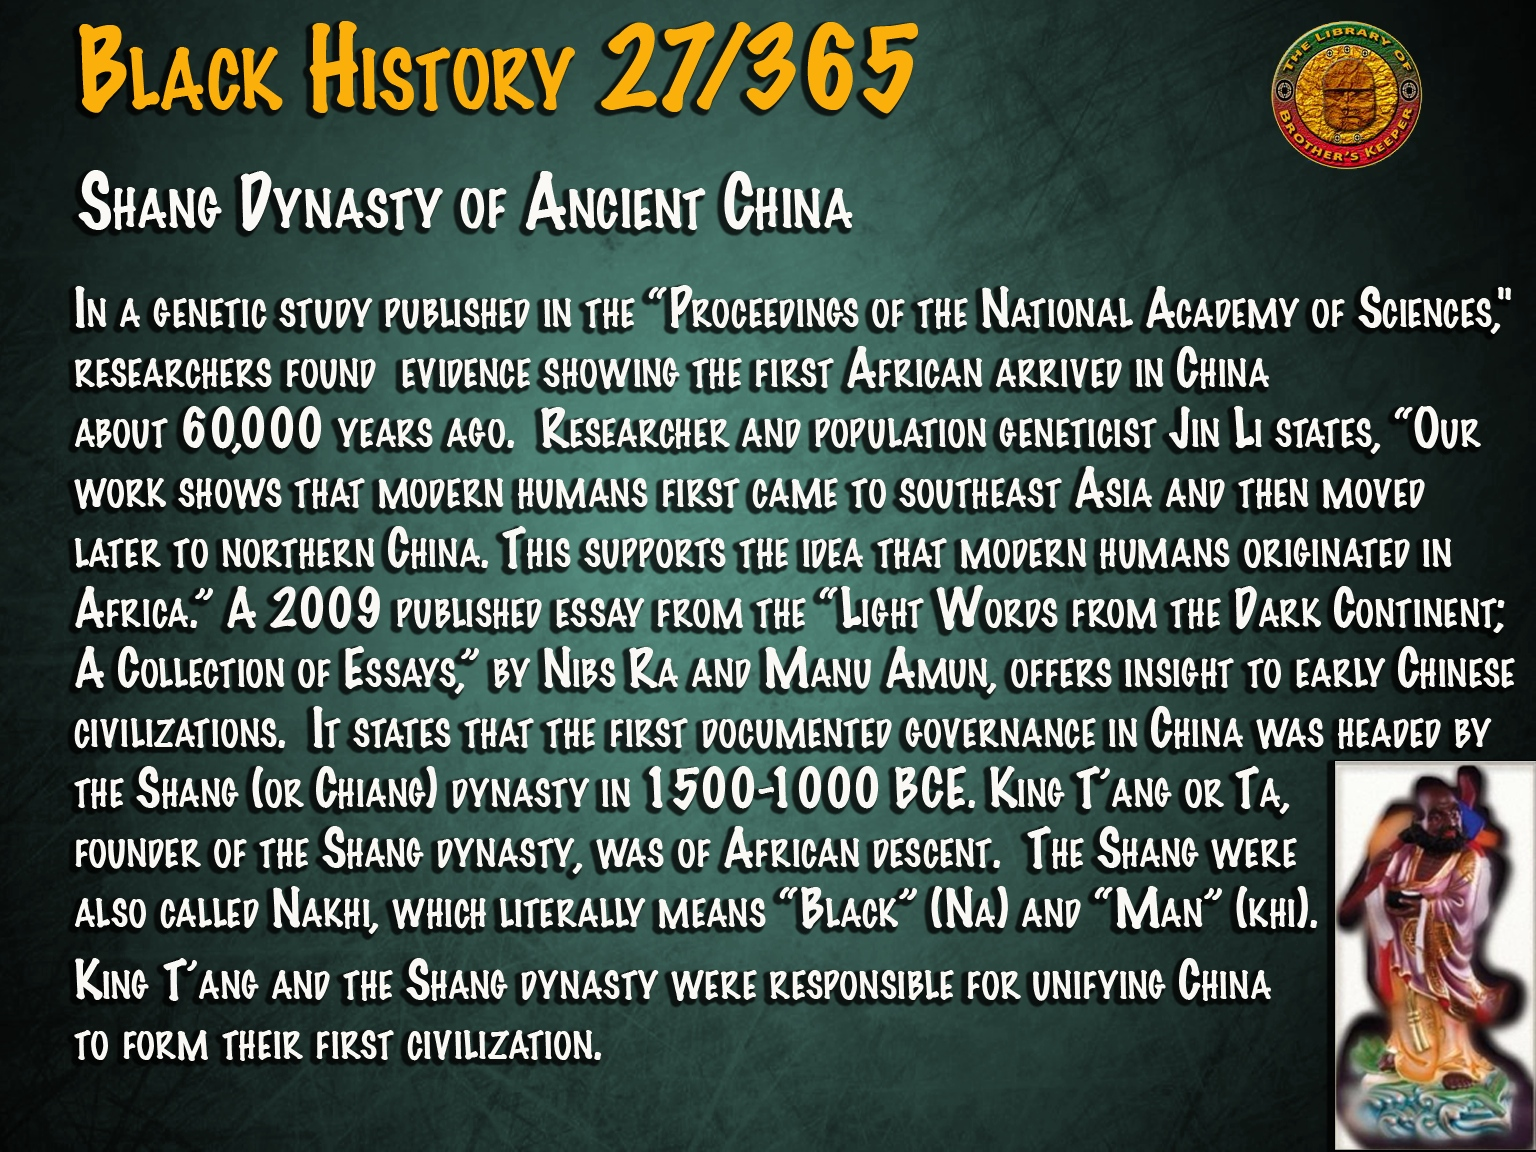 Shang Dynasty of Ancient China